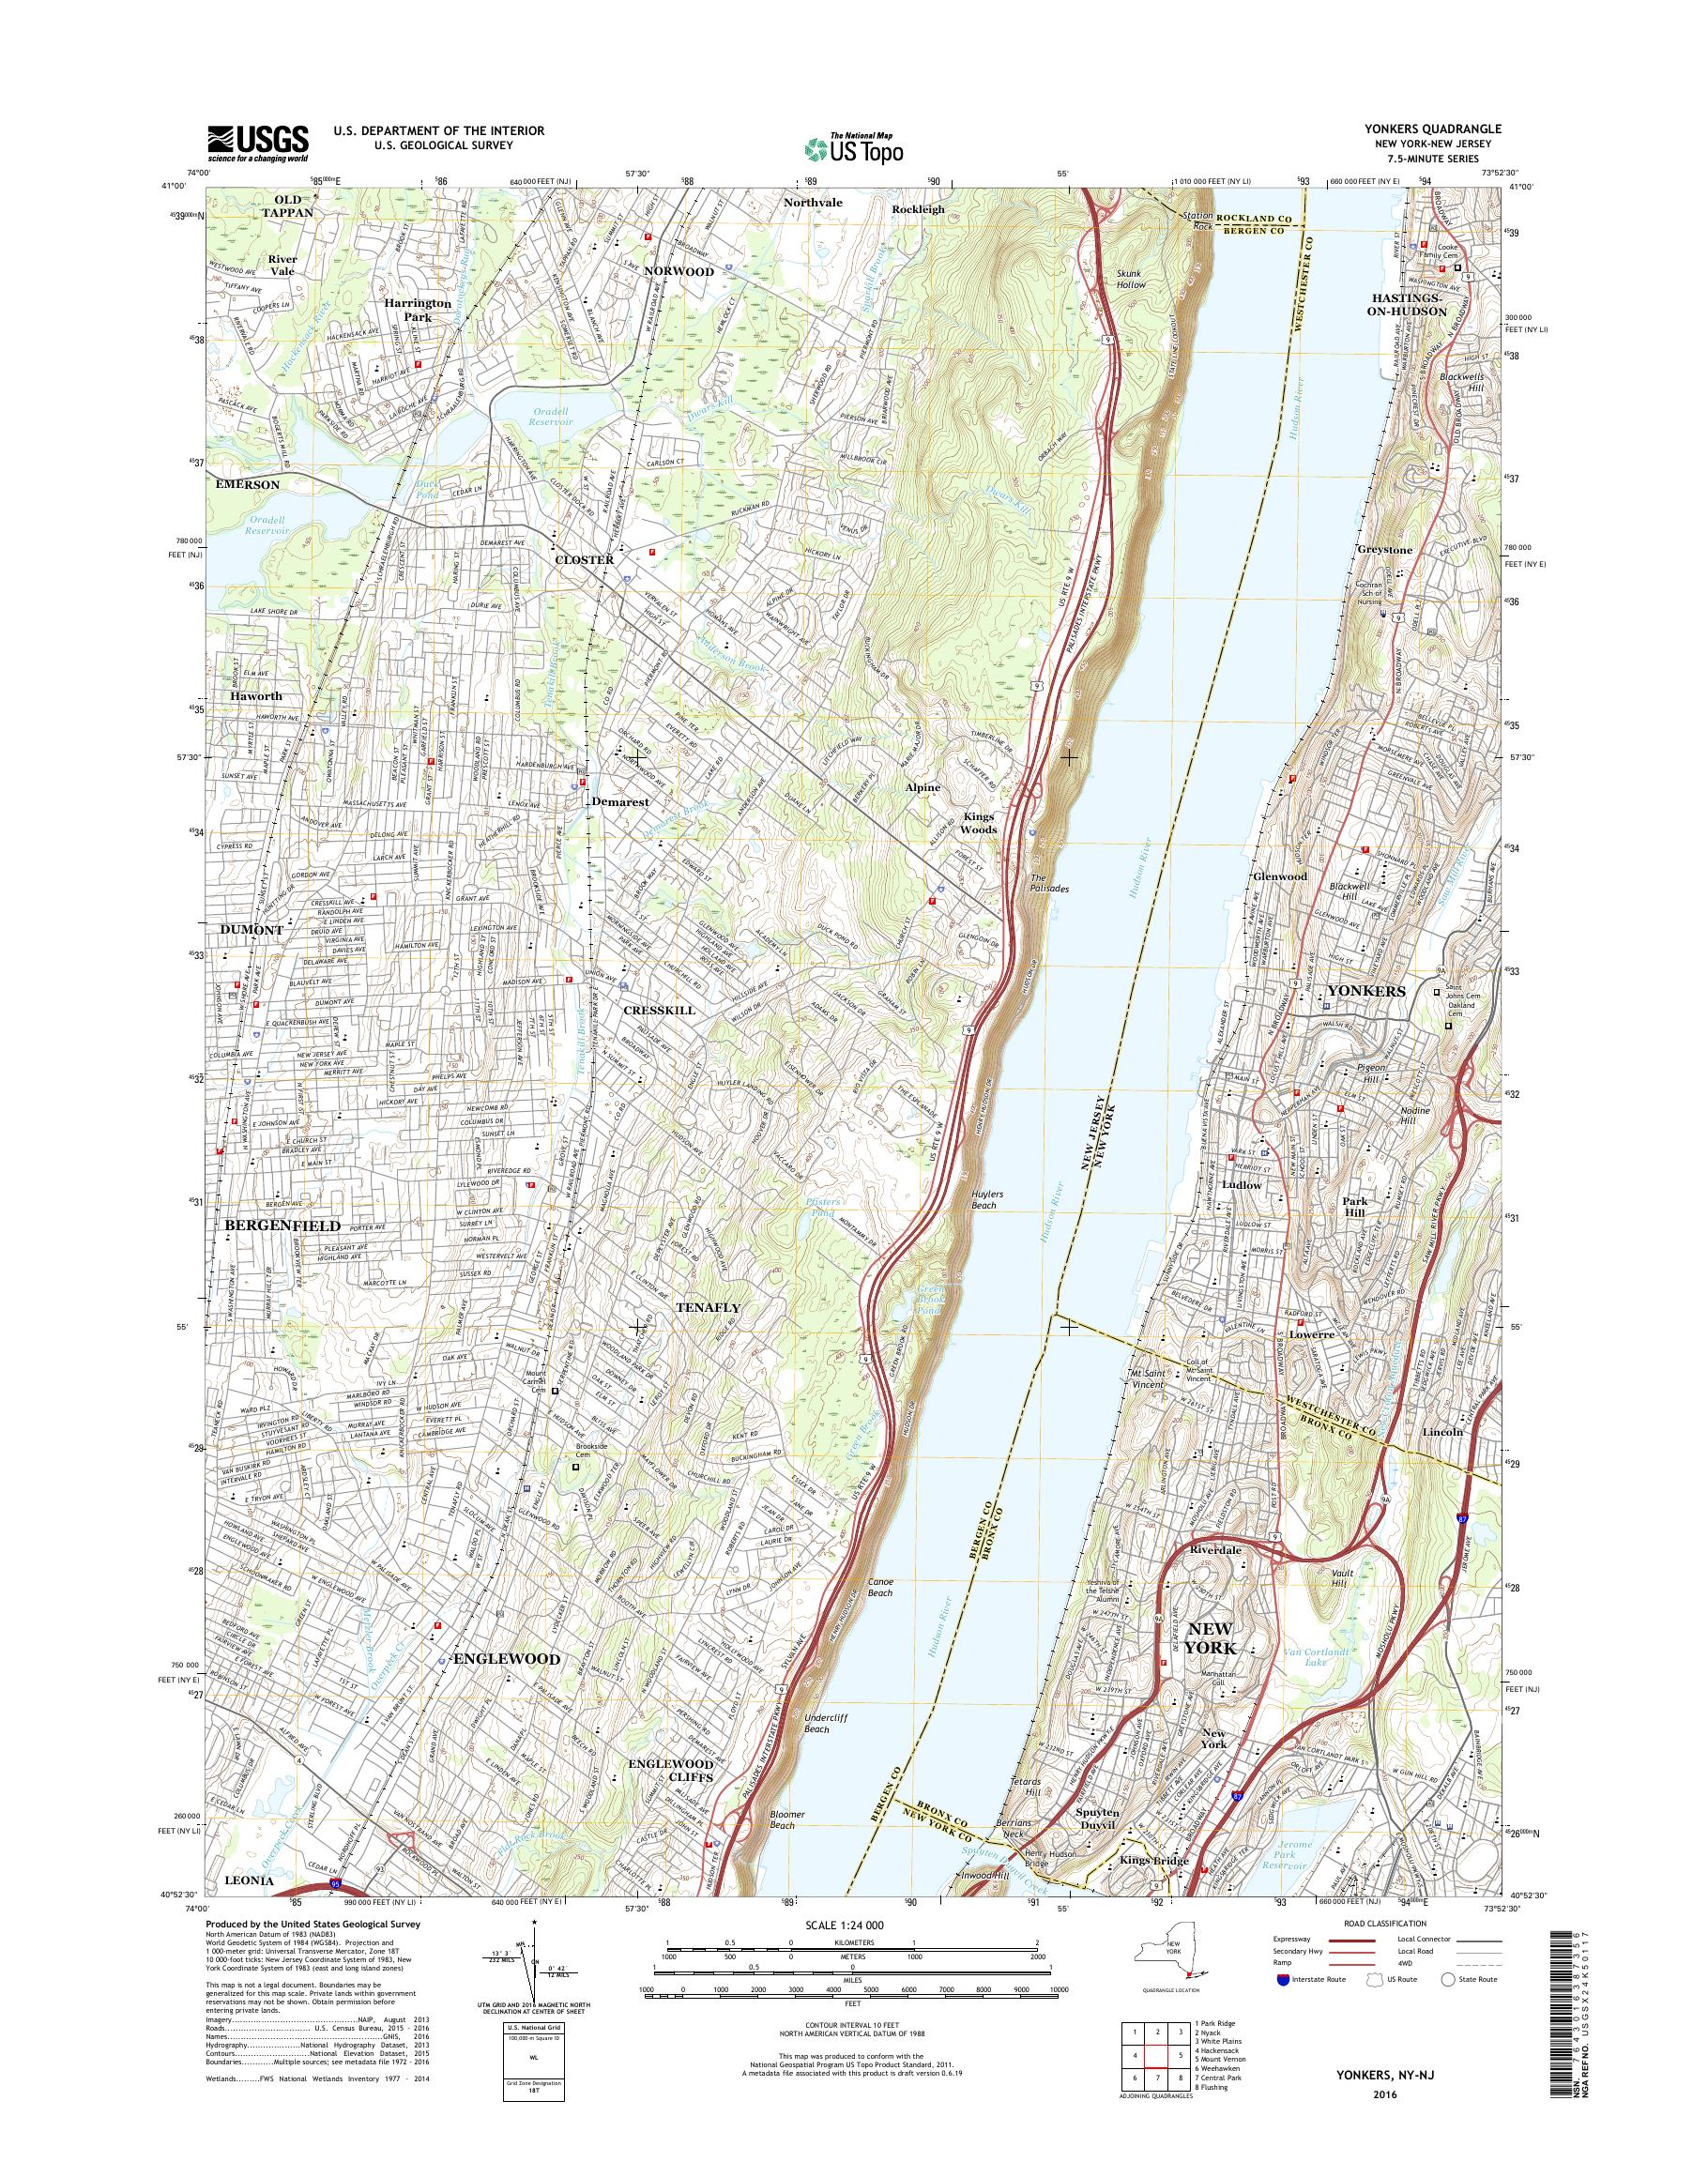 MyTopo Yonkers, New York USGS Quad Topo Map on richfield springs map, stuyvesant map, staten island map, suffolk counties map, cornwall-on-hudson map, east ramapo map, rondout valley map, wawayanda map, new york map, white plains map, tarrytown train station map, rowayton map, fairport map, clason point map, yaphank map, lakewood map, westchester map, tioga downs map, whitestone map, queens museum map,